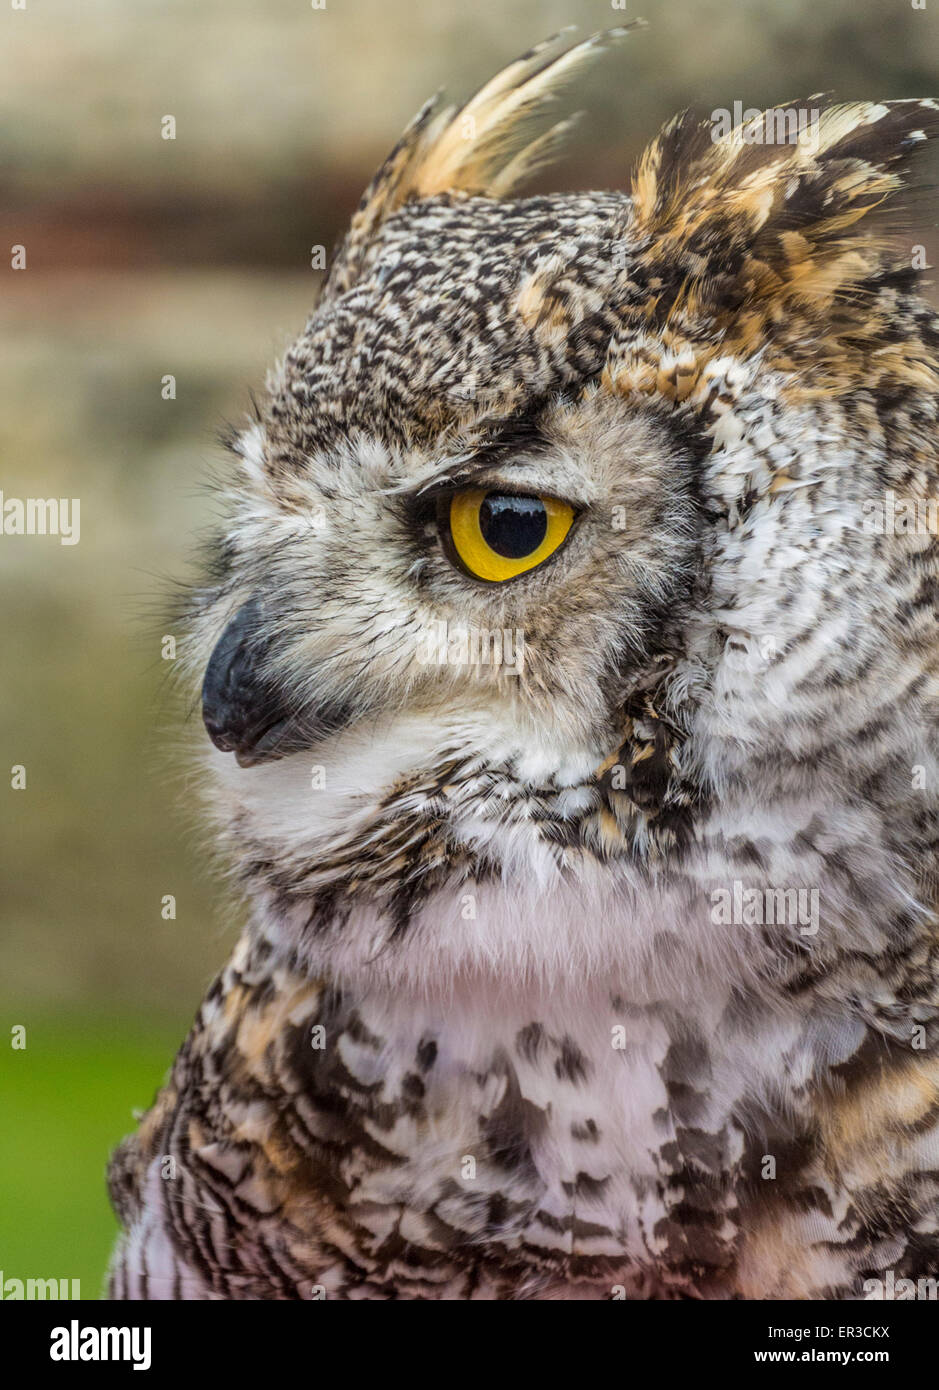 Canadian Great horned owl - Stock Image